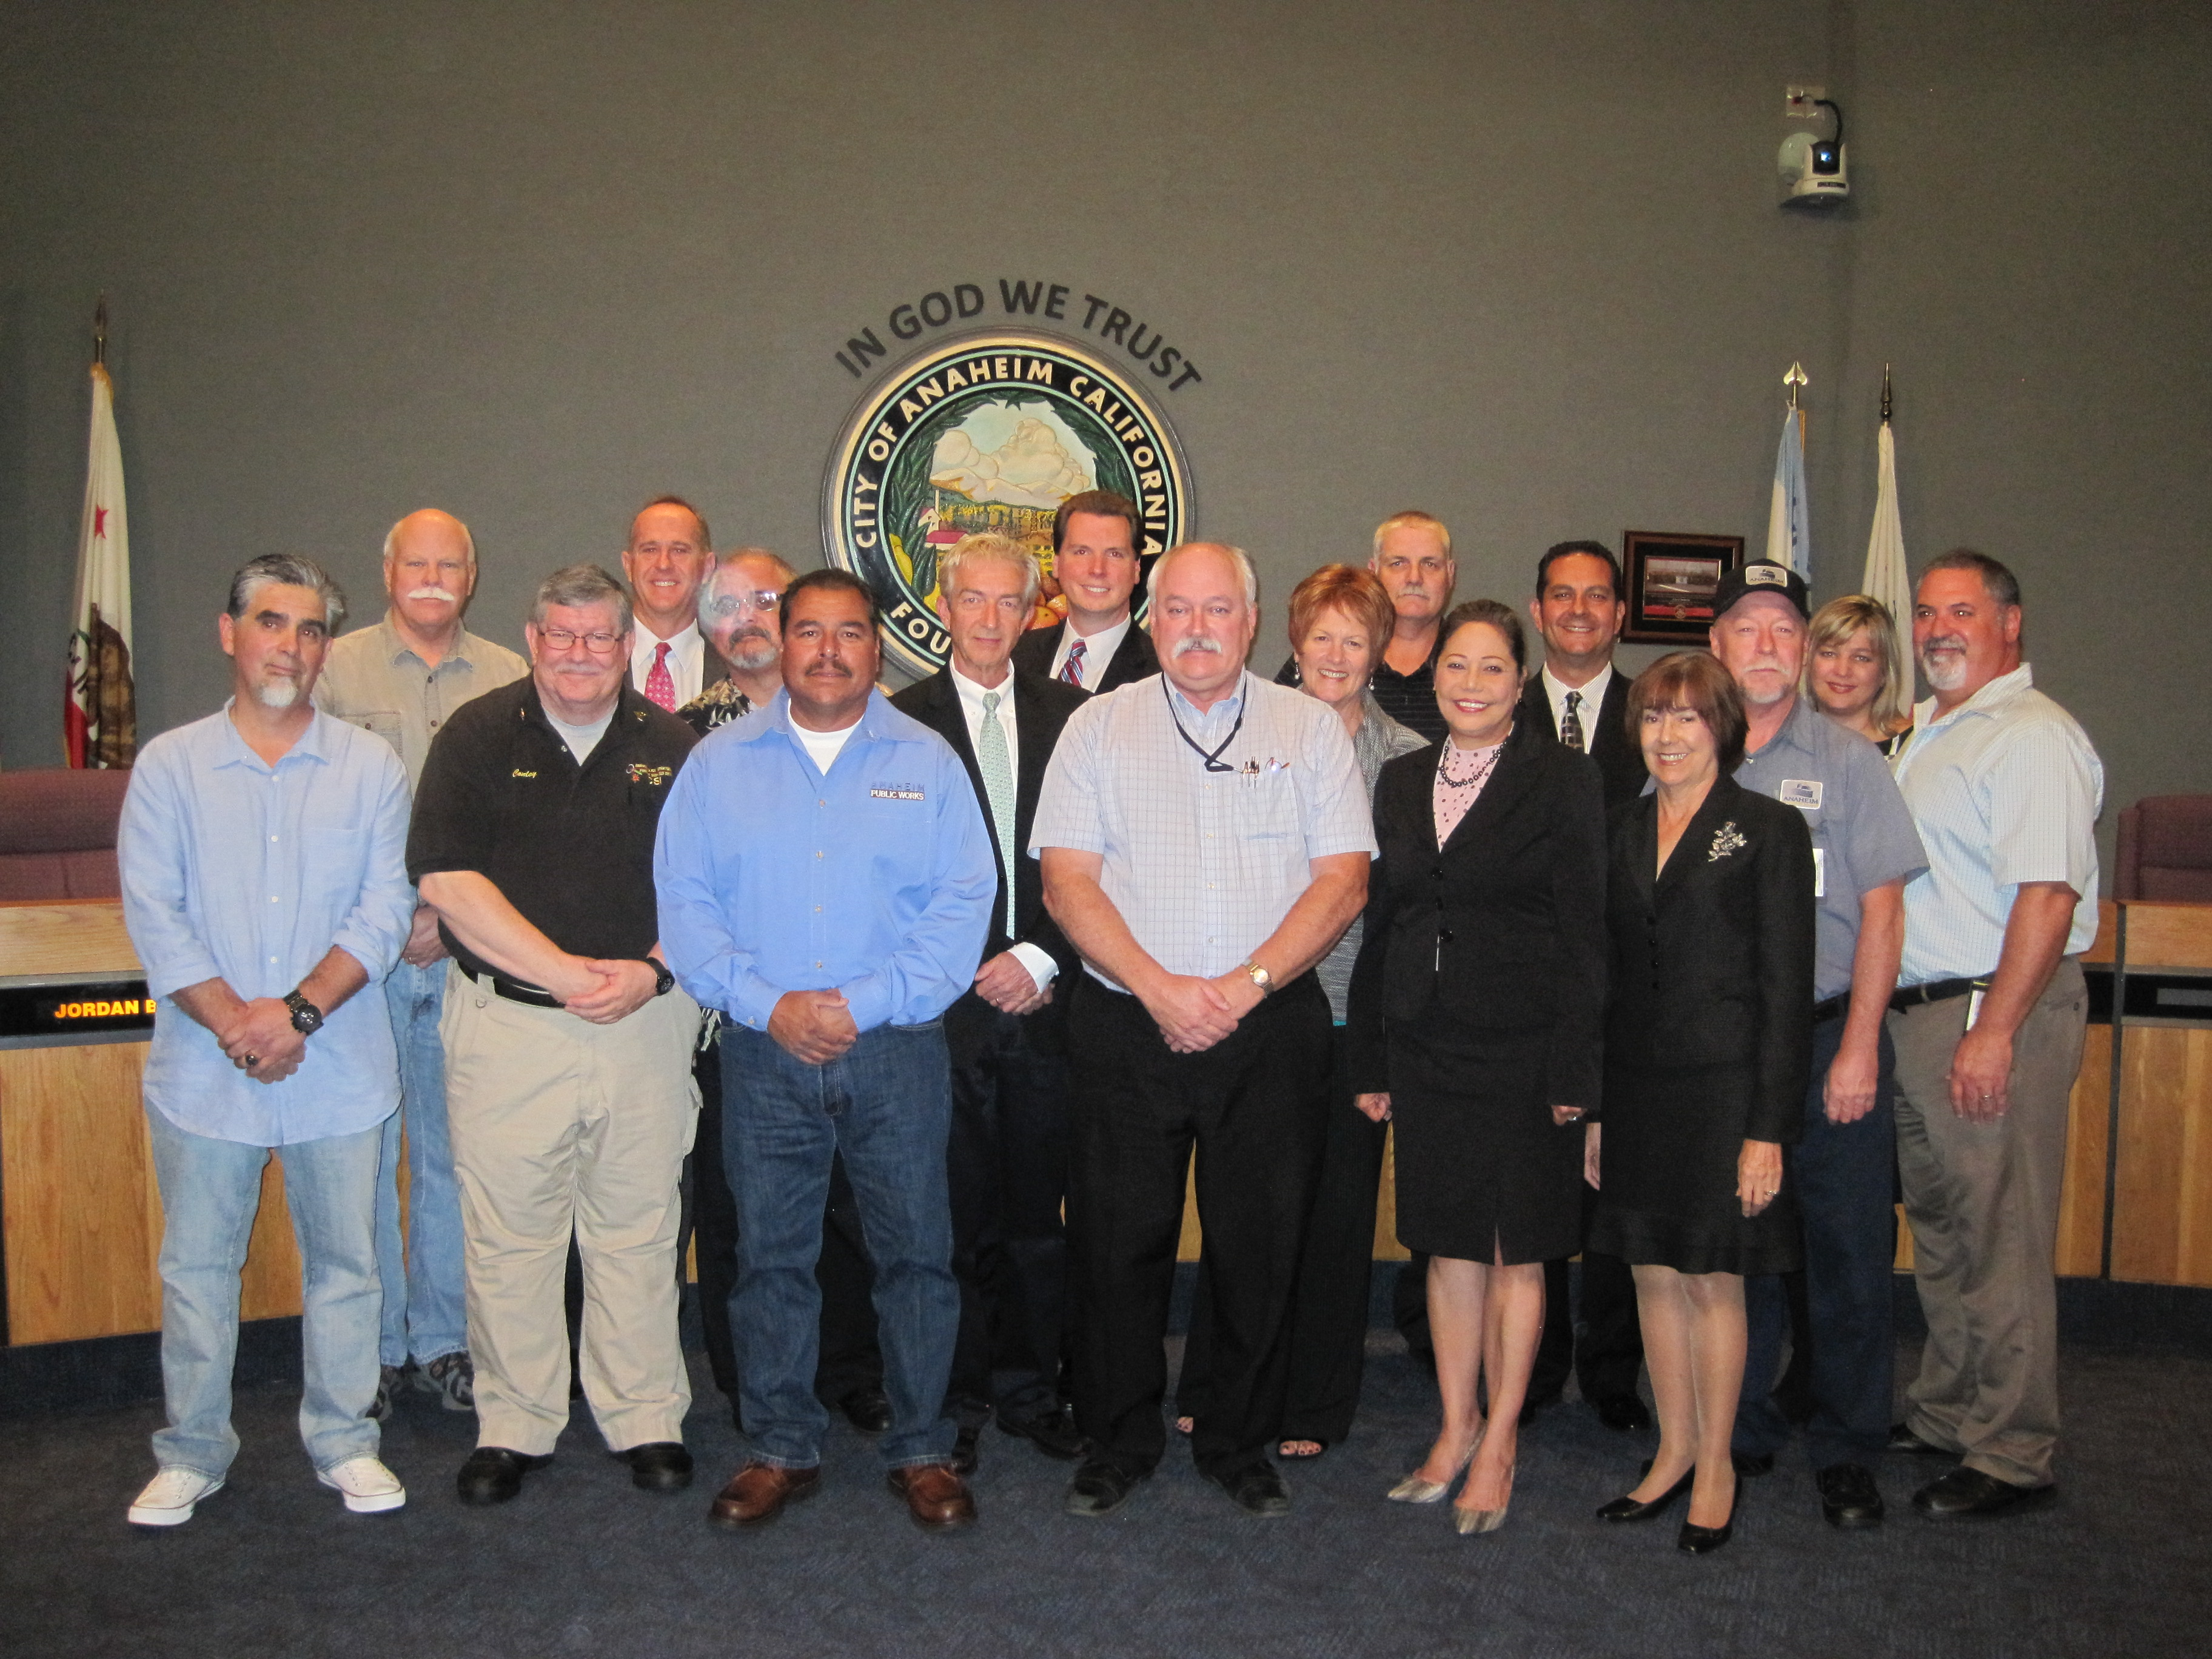 Group photo with Councilmembers and Public Works staff